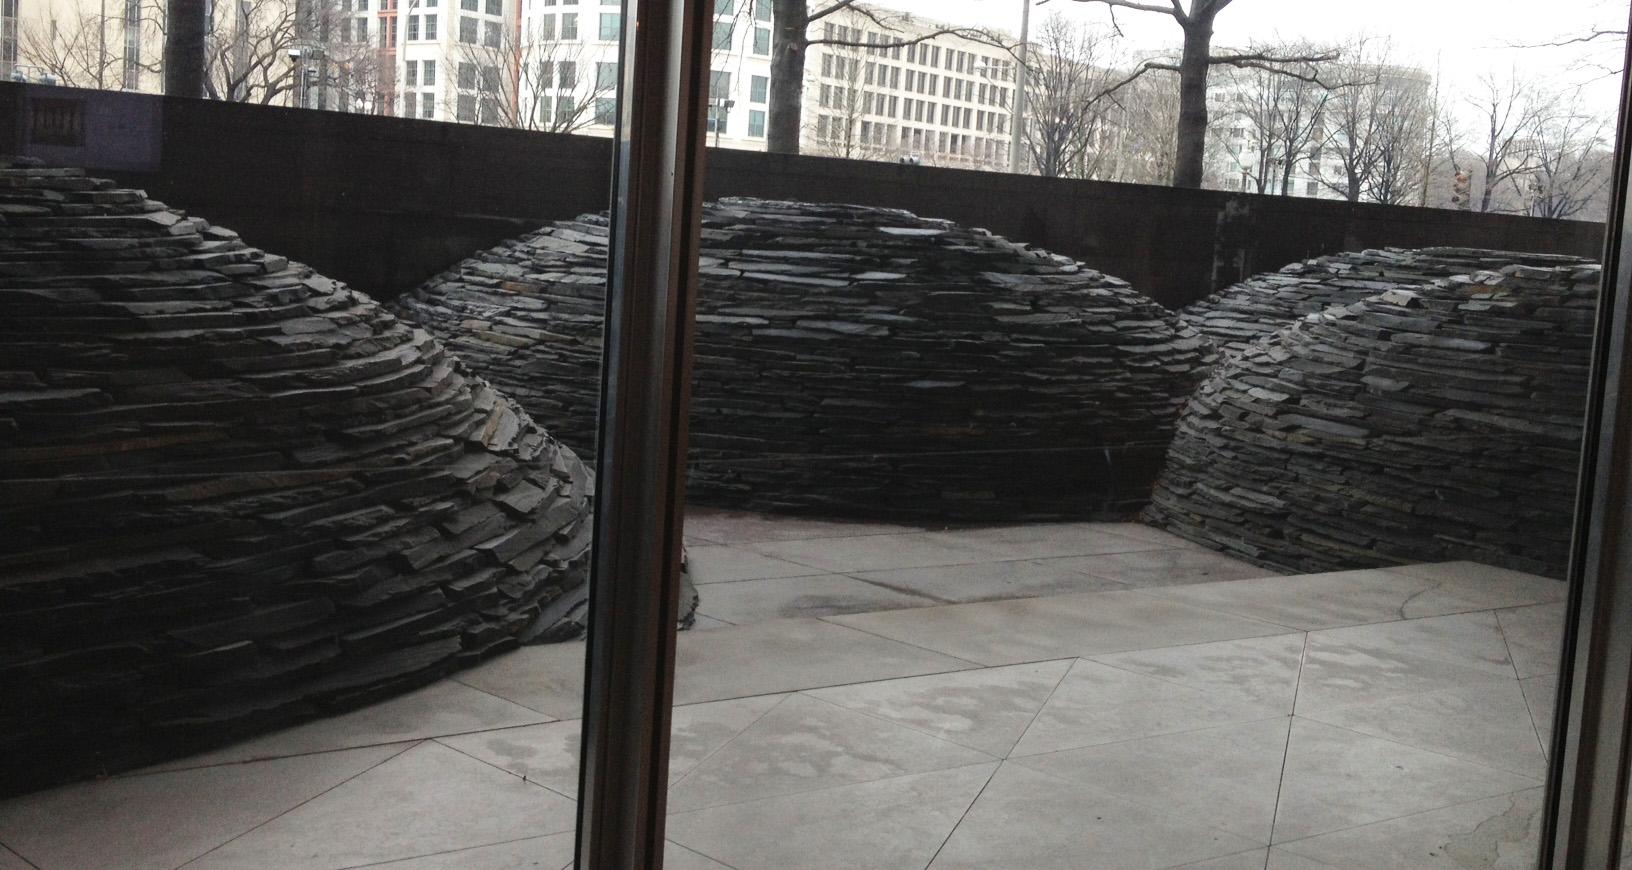 It's pretty rare to find Goldsworthy's work in galleries or museums. I always feel lucky if I stumble onto it. Unfortunately you could get no closer to it than this as the doors out to the patio were locked and the windows to look down on it were very dirty.